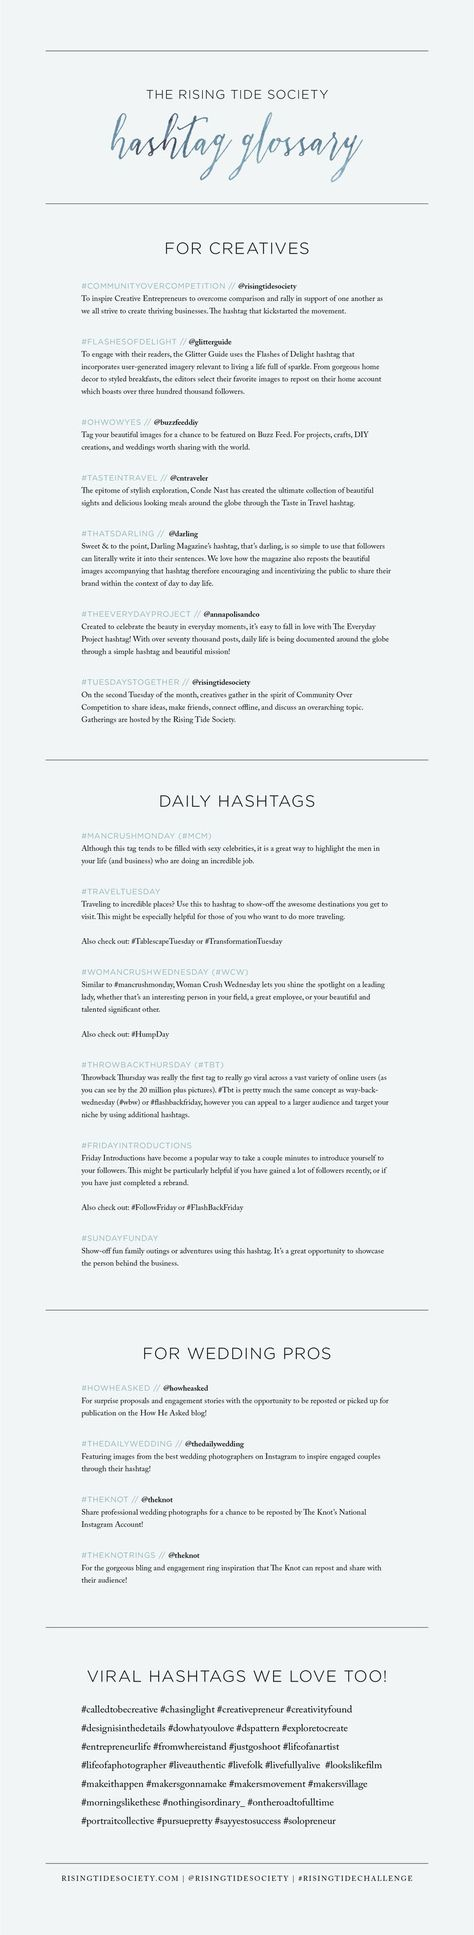 Instagram Hashtag Glossary for Creatives